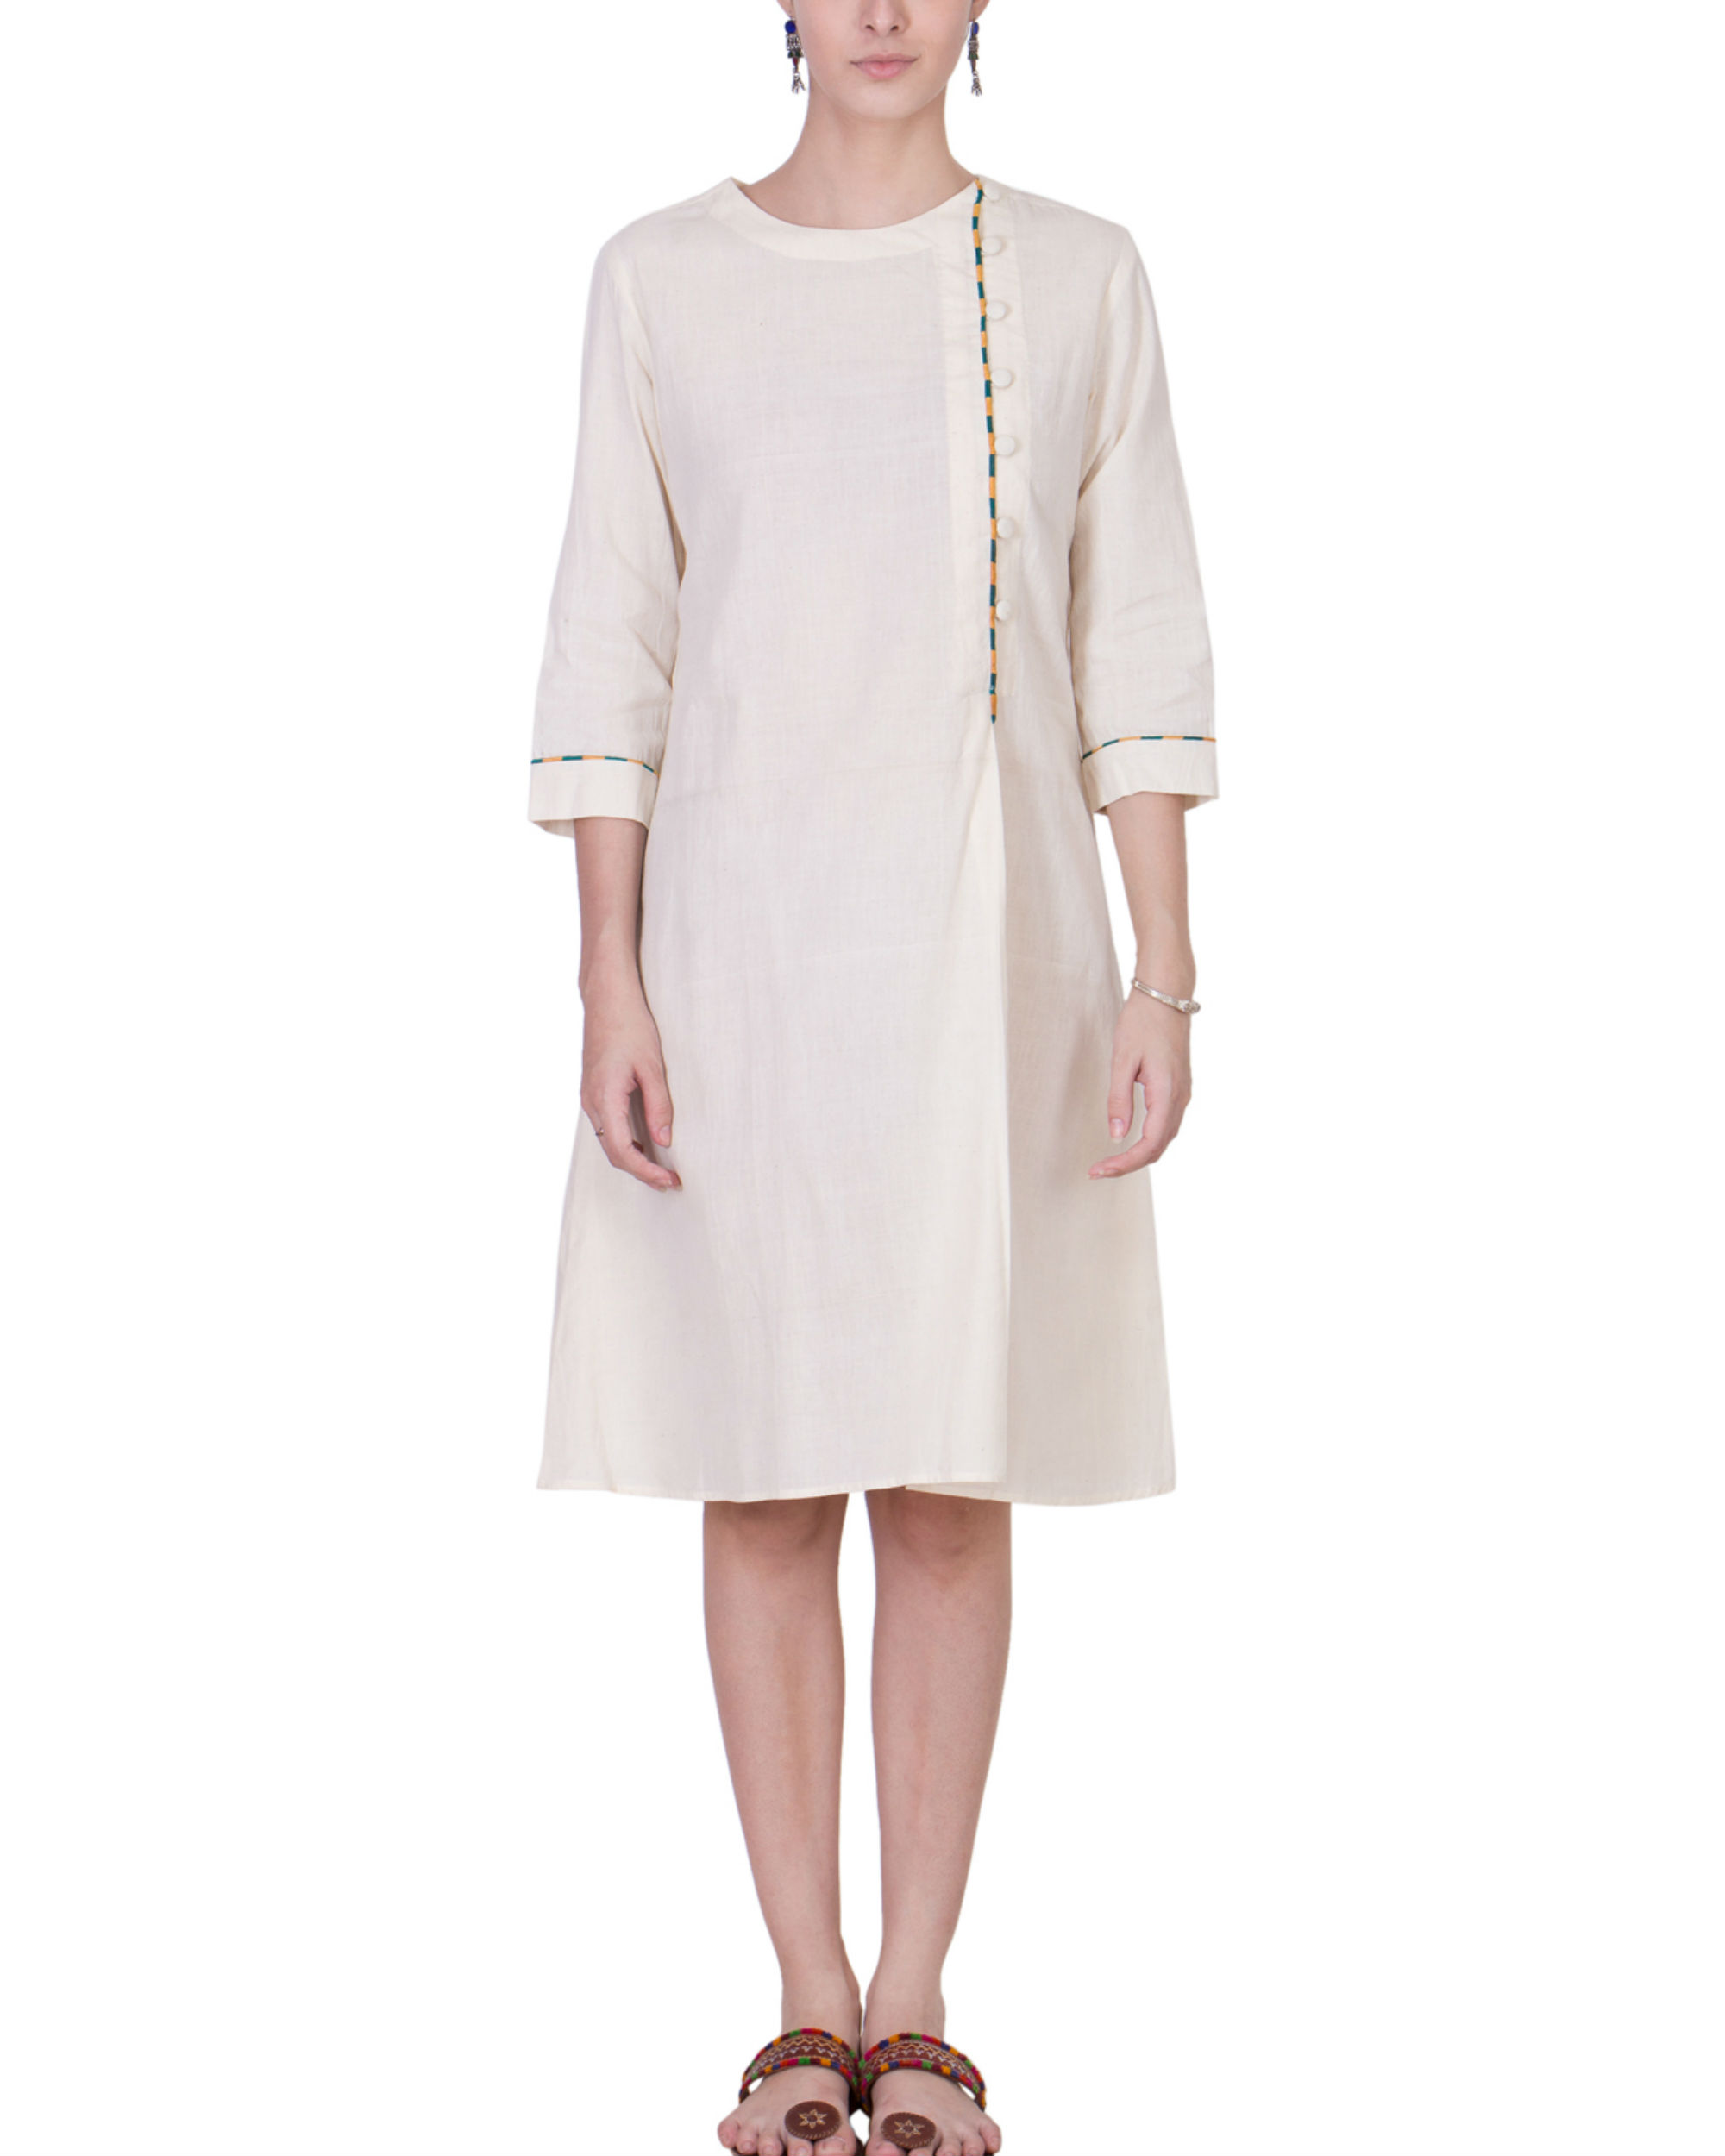 Ecru muslin assymetric dress